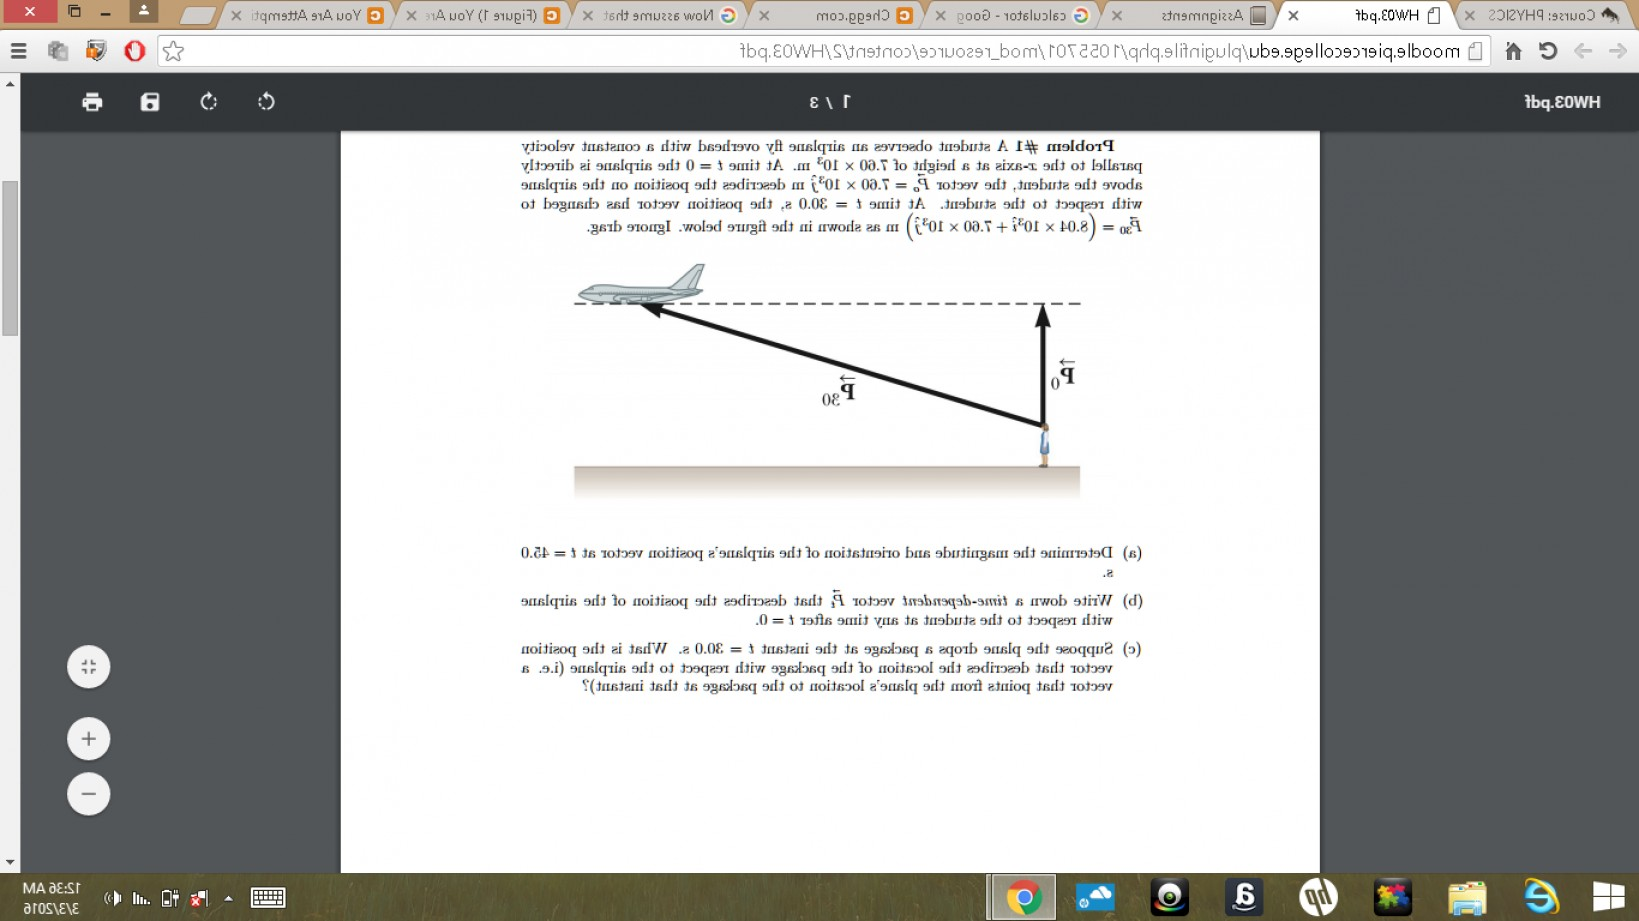 Vector Airplane Problem: Student Observes Airplane Fly Overhead Constant Velocity Parallel X Axis Height Times Q